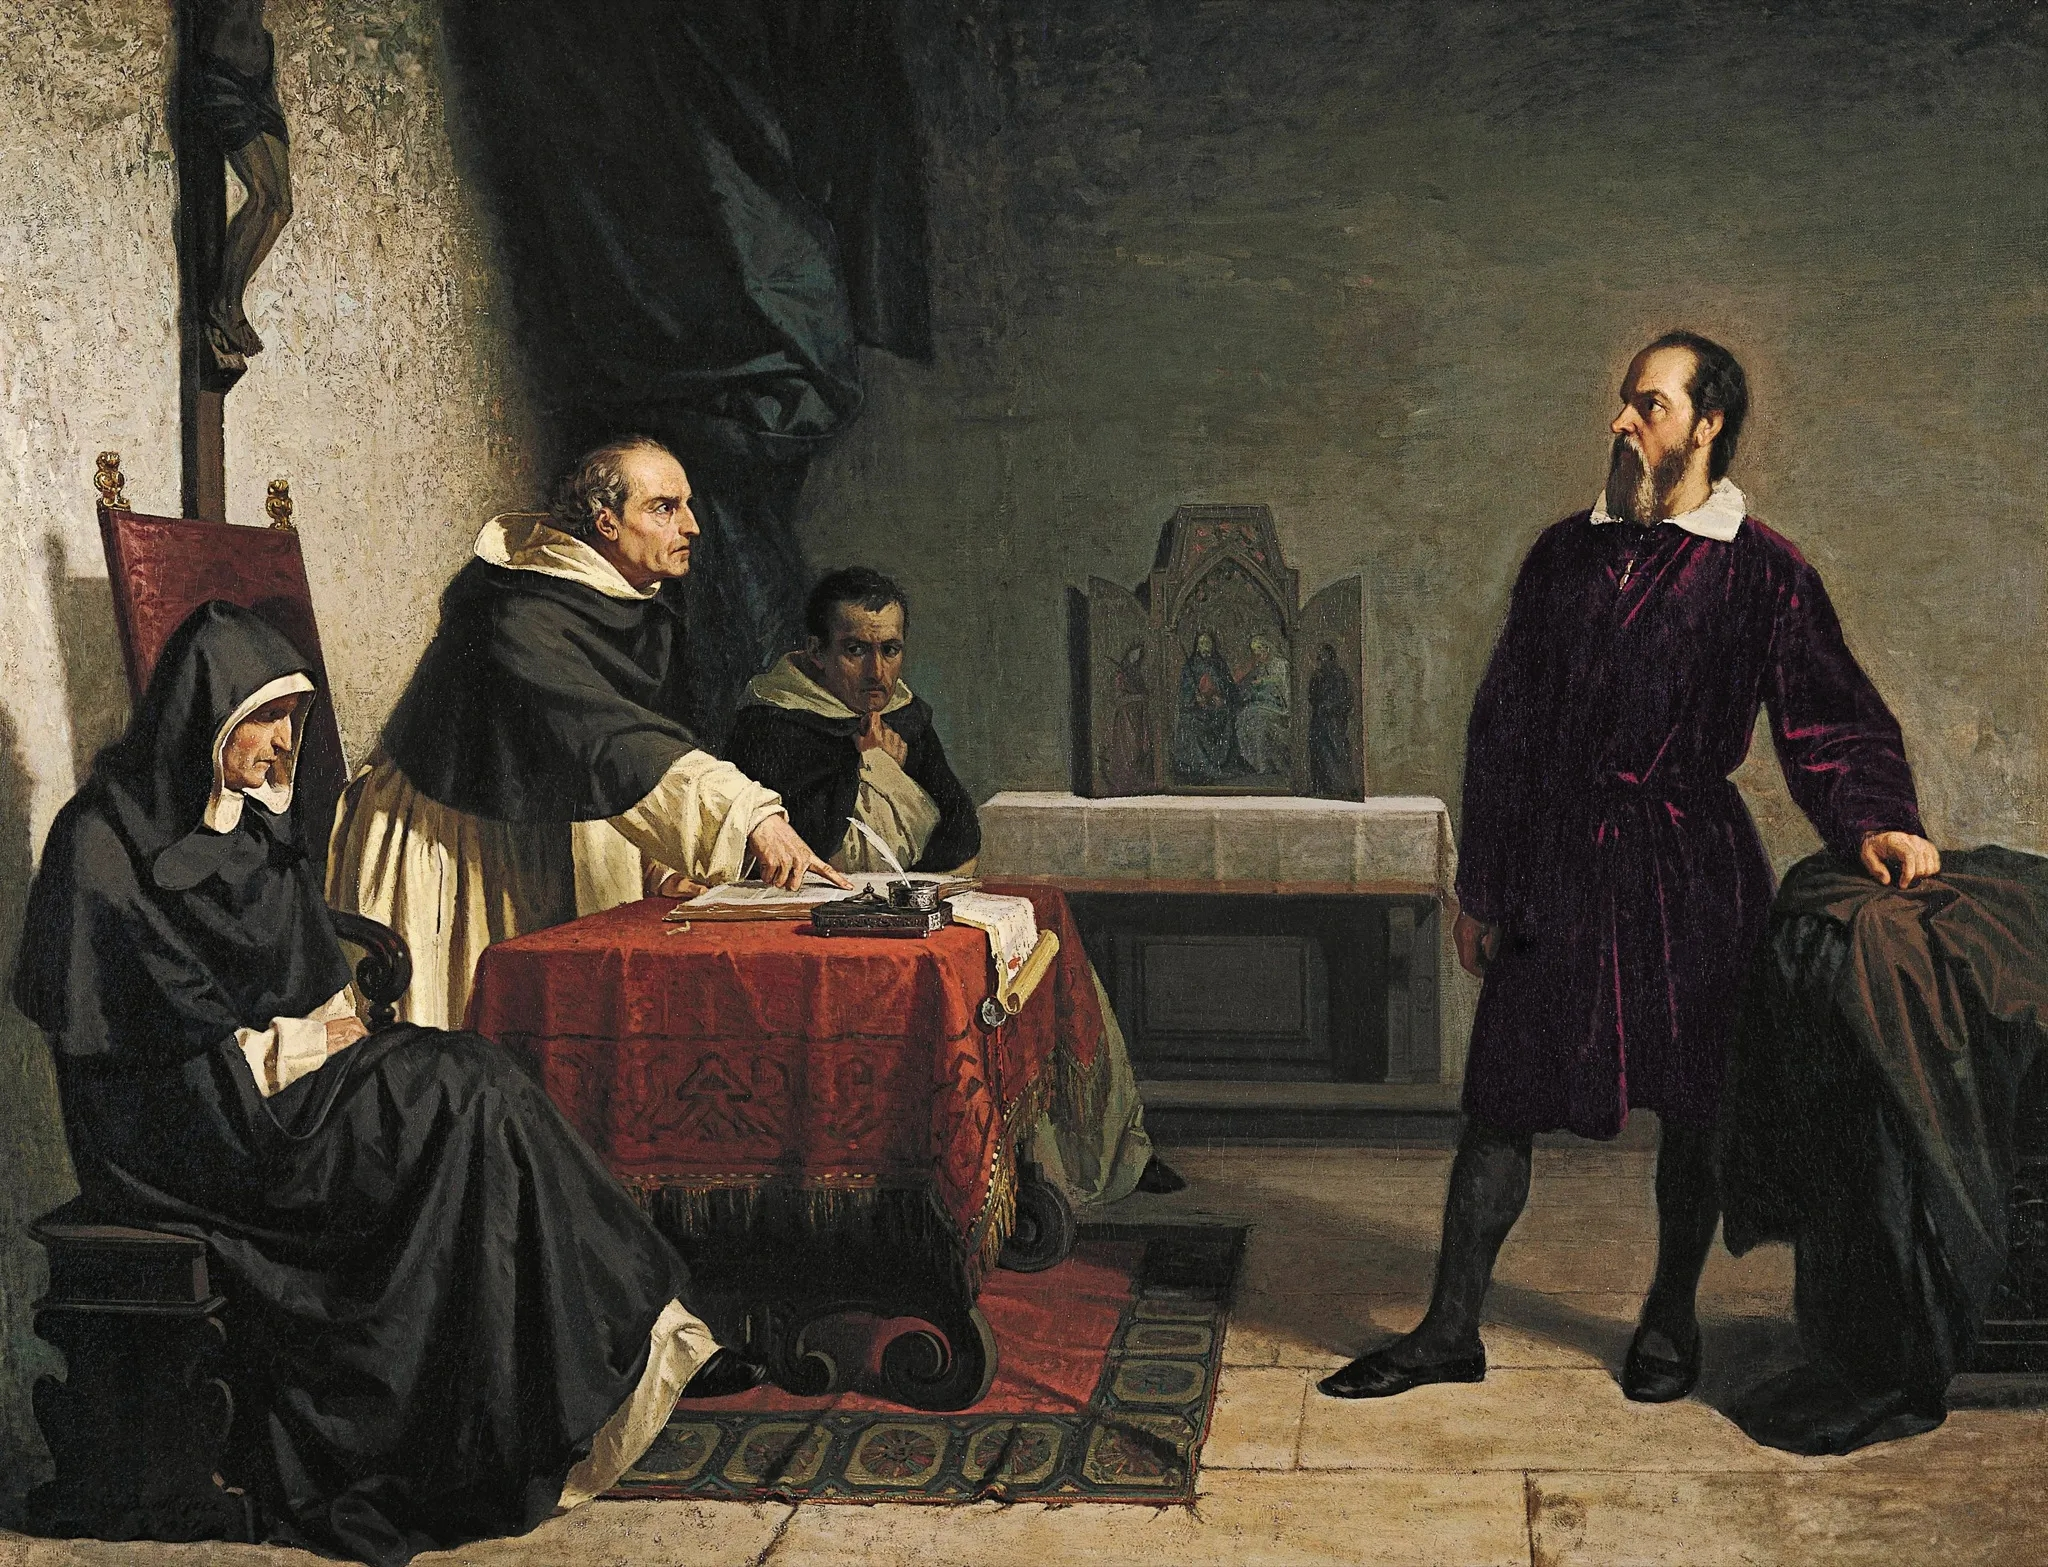 http://upload.wikimedia.org/wikipedia/commons/8/88/Galileo_facing_the_Roman_Inquisition.jpg